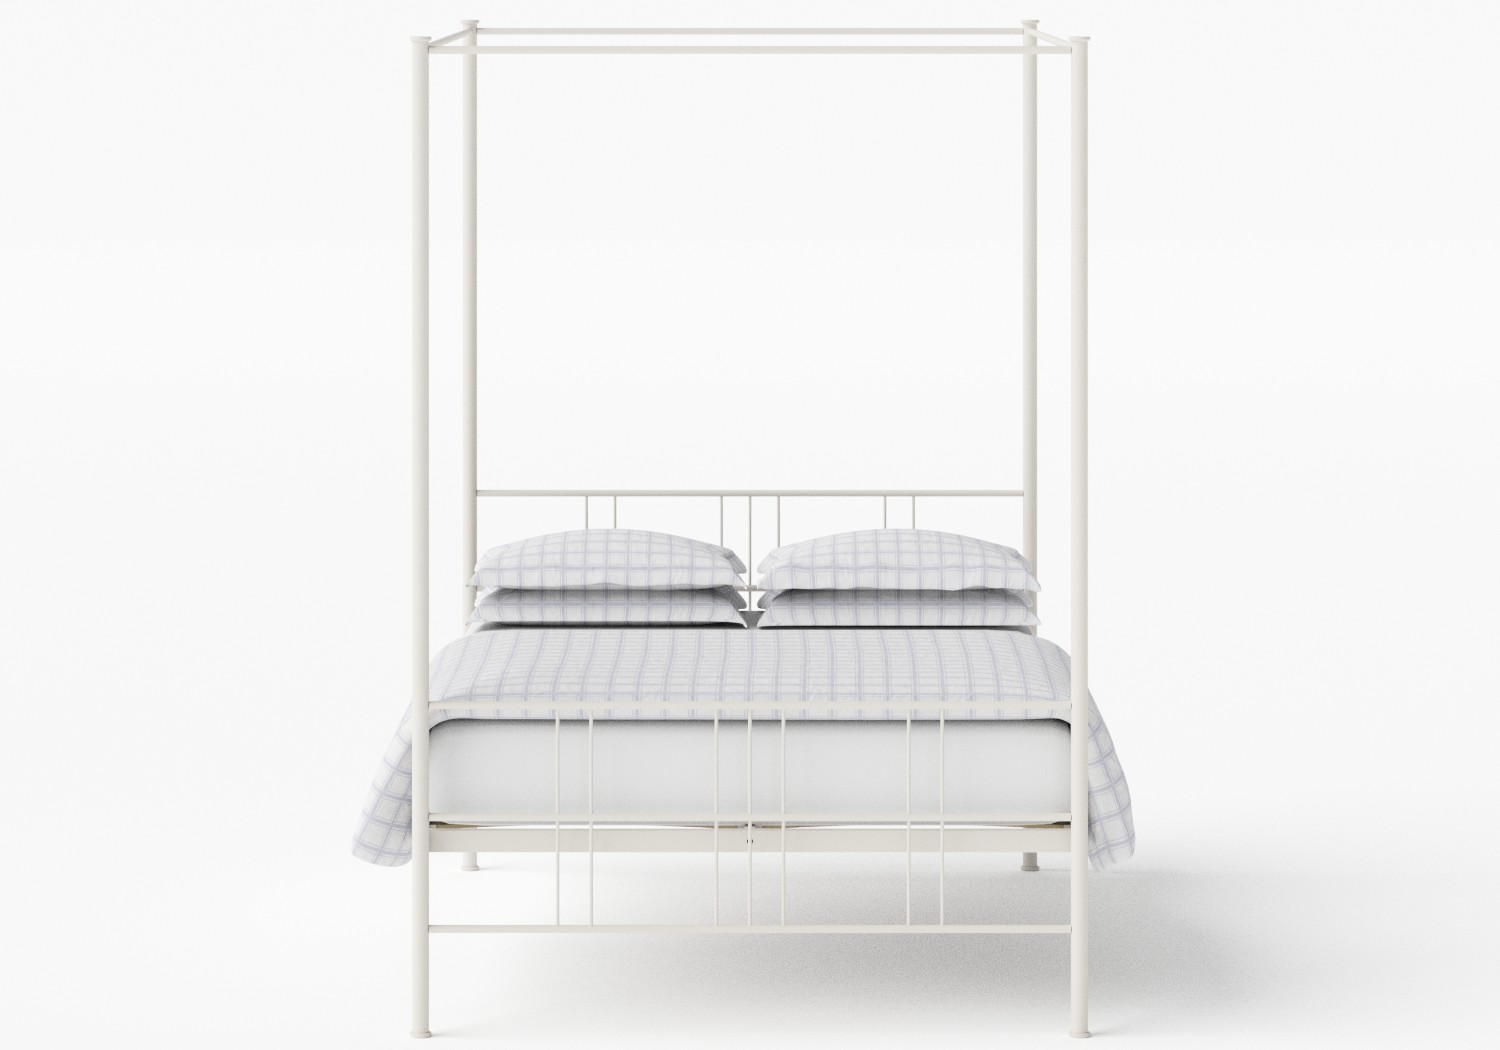 Toulon iron bed in Ivory